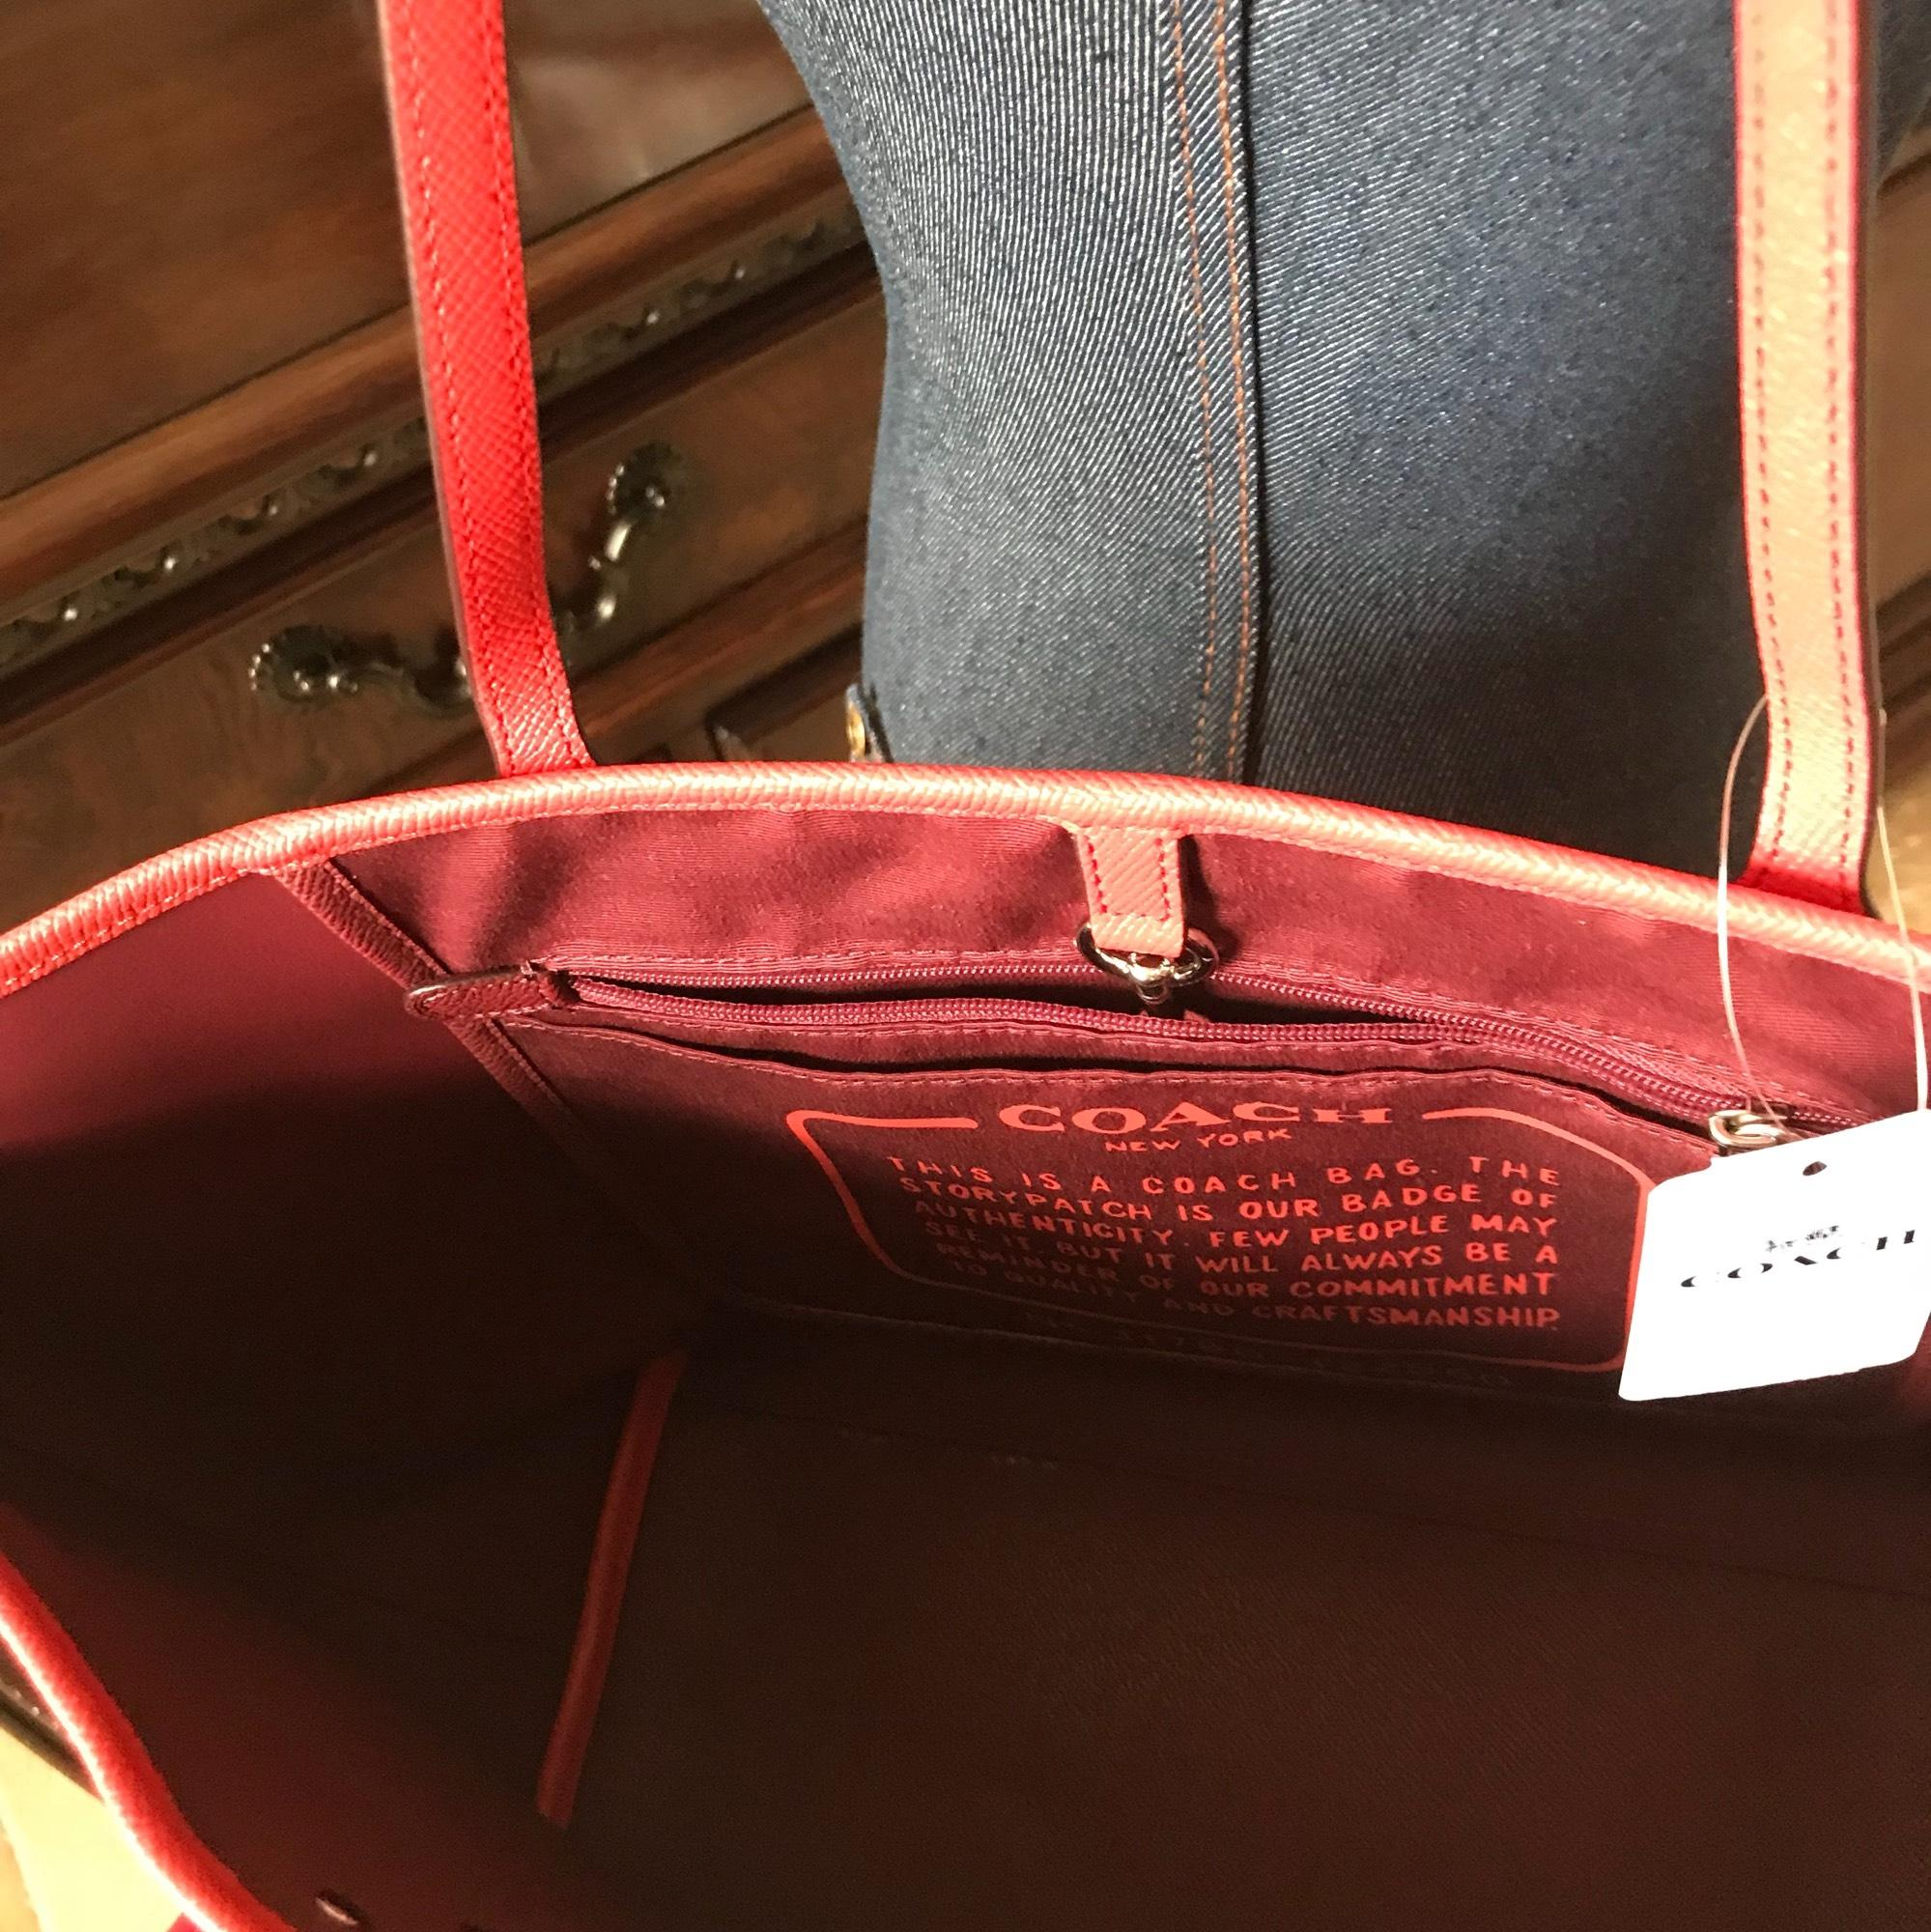 Closeout Coach Tote Red Ombre A17b4 53ca7 Swagger Wristlet In Pebble Leather Watermelon Where To Buy Bnwt Ombr F22560 And Wallet F22808 Shoulder Bag Tradesy 26777 2d1d0